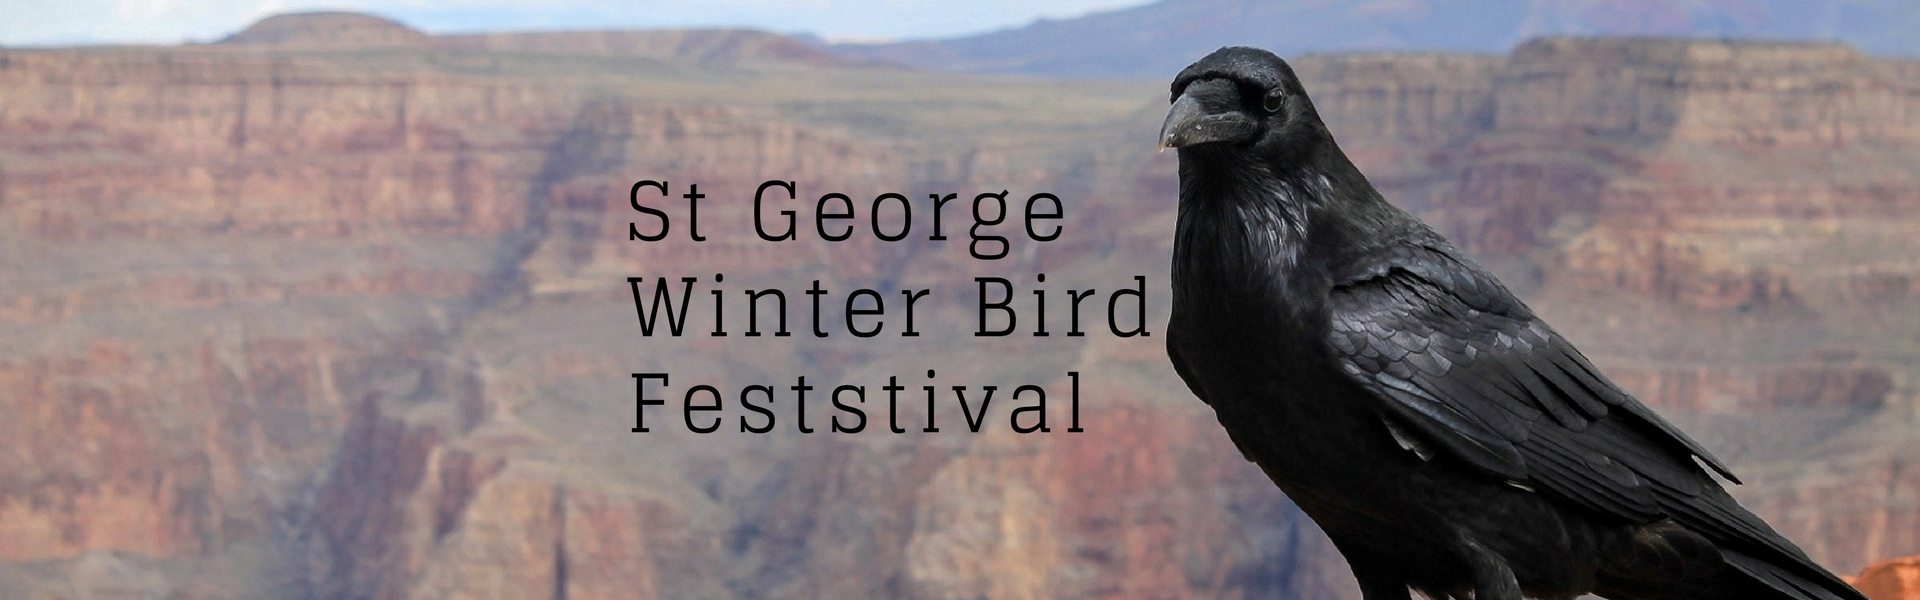 Tweeters Unite for the St George Winter Bird Festival